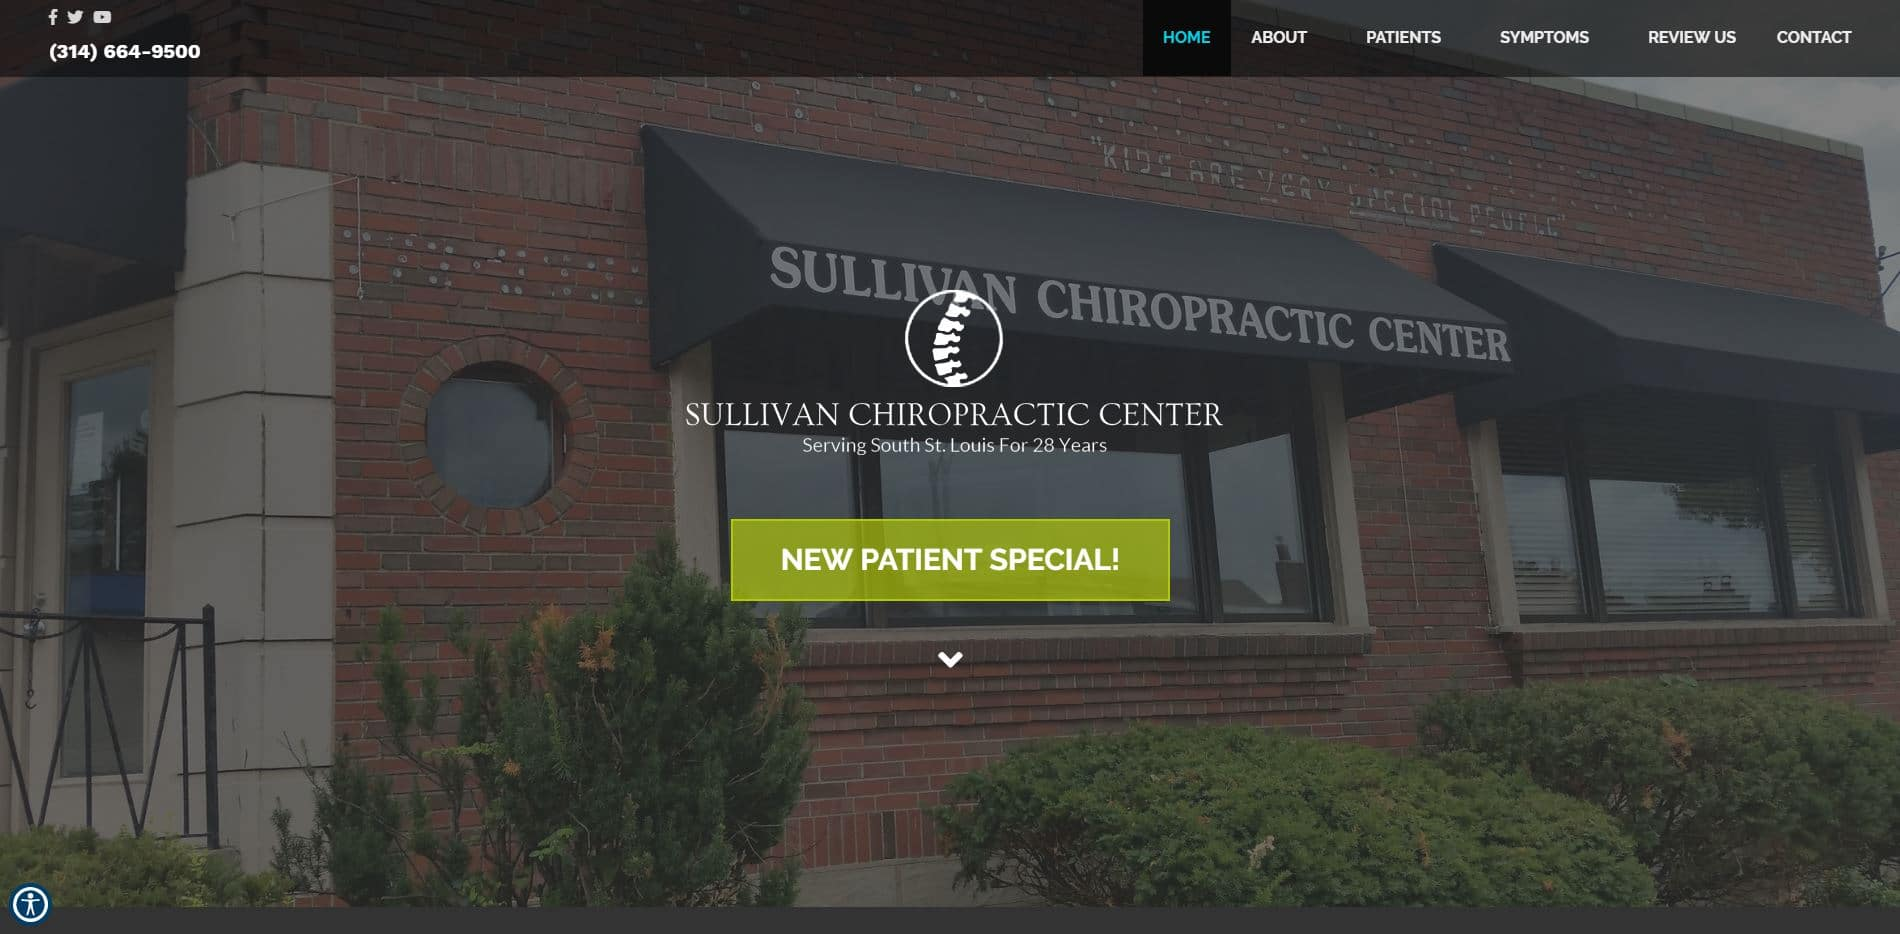 Chiropractor in St. Louis